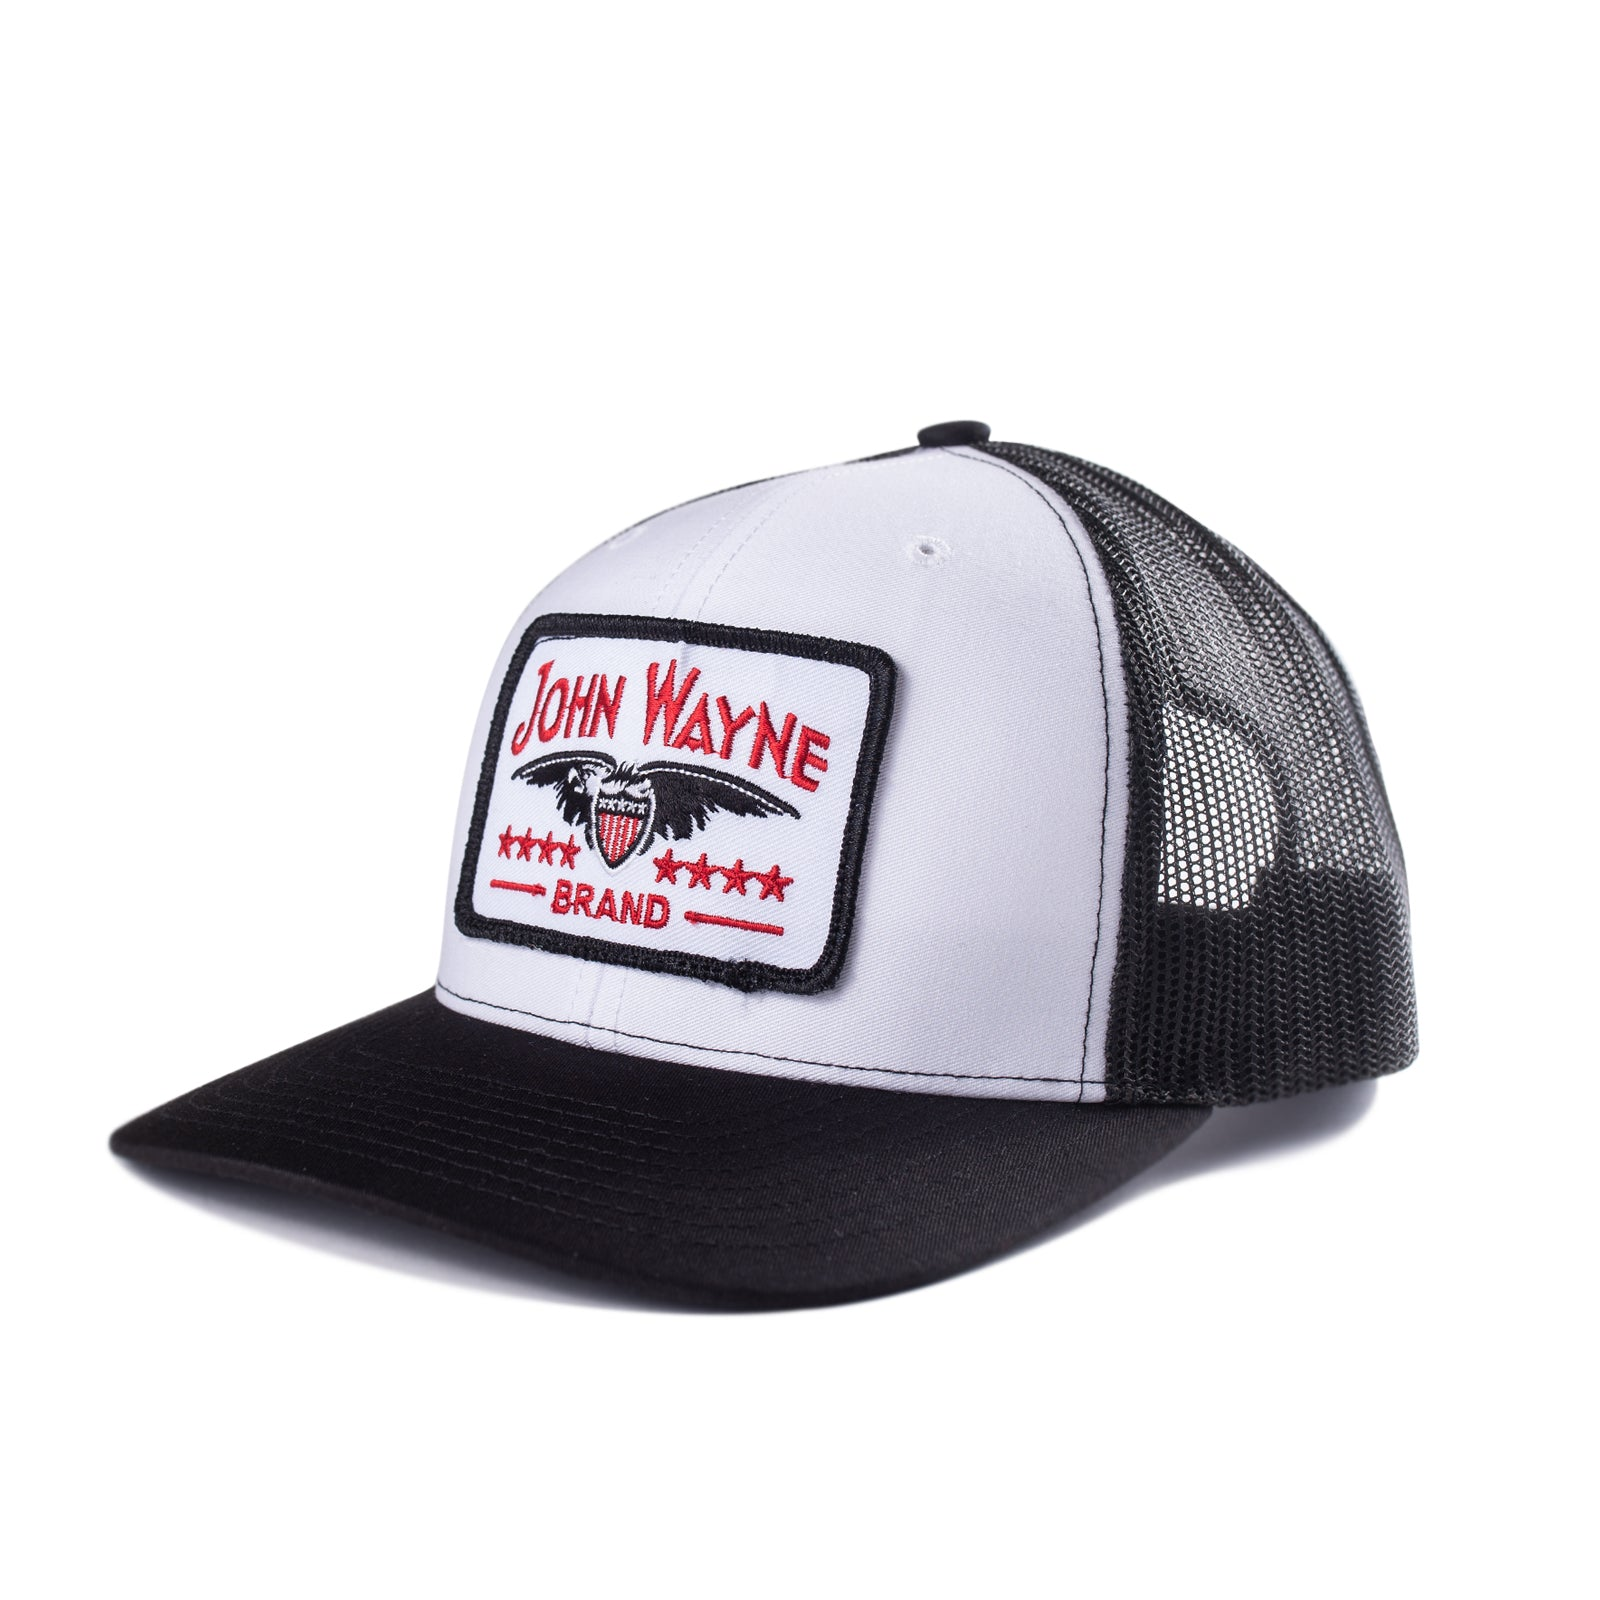 Curve Bill Stamp Trucker Hat - Black/White